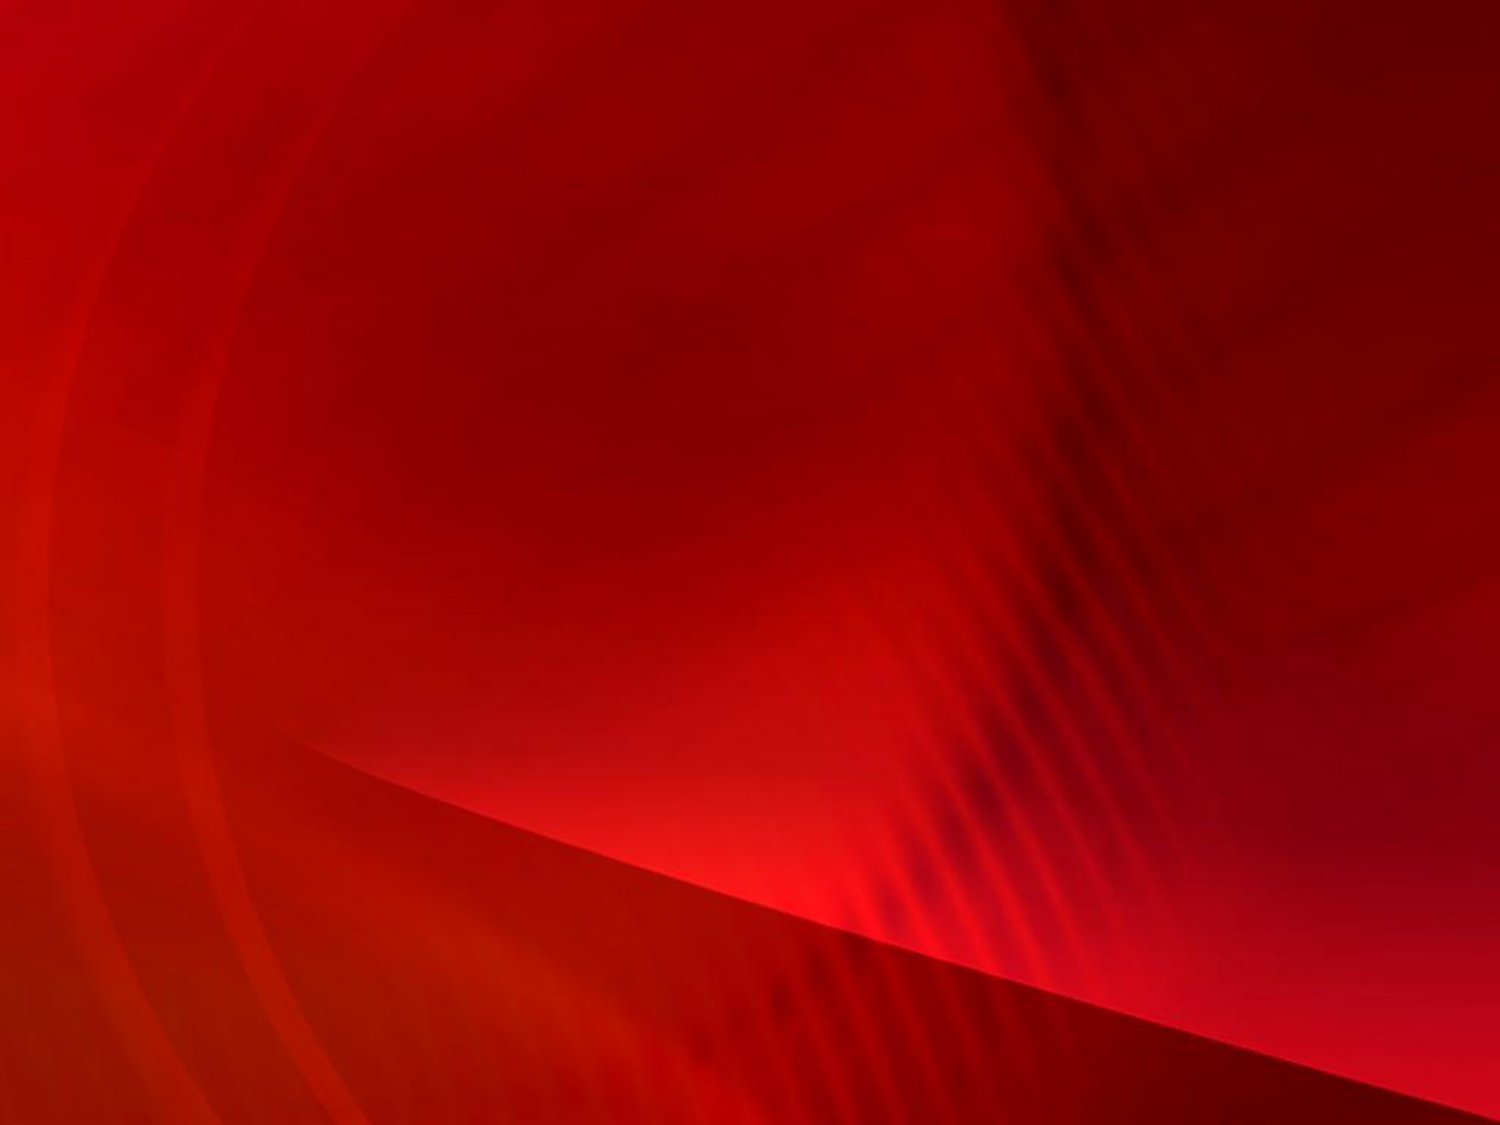 Background image google slides - Powerpoint Slides Free Powerpoint Template Background Slide Red Phase